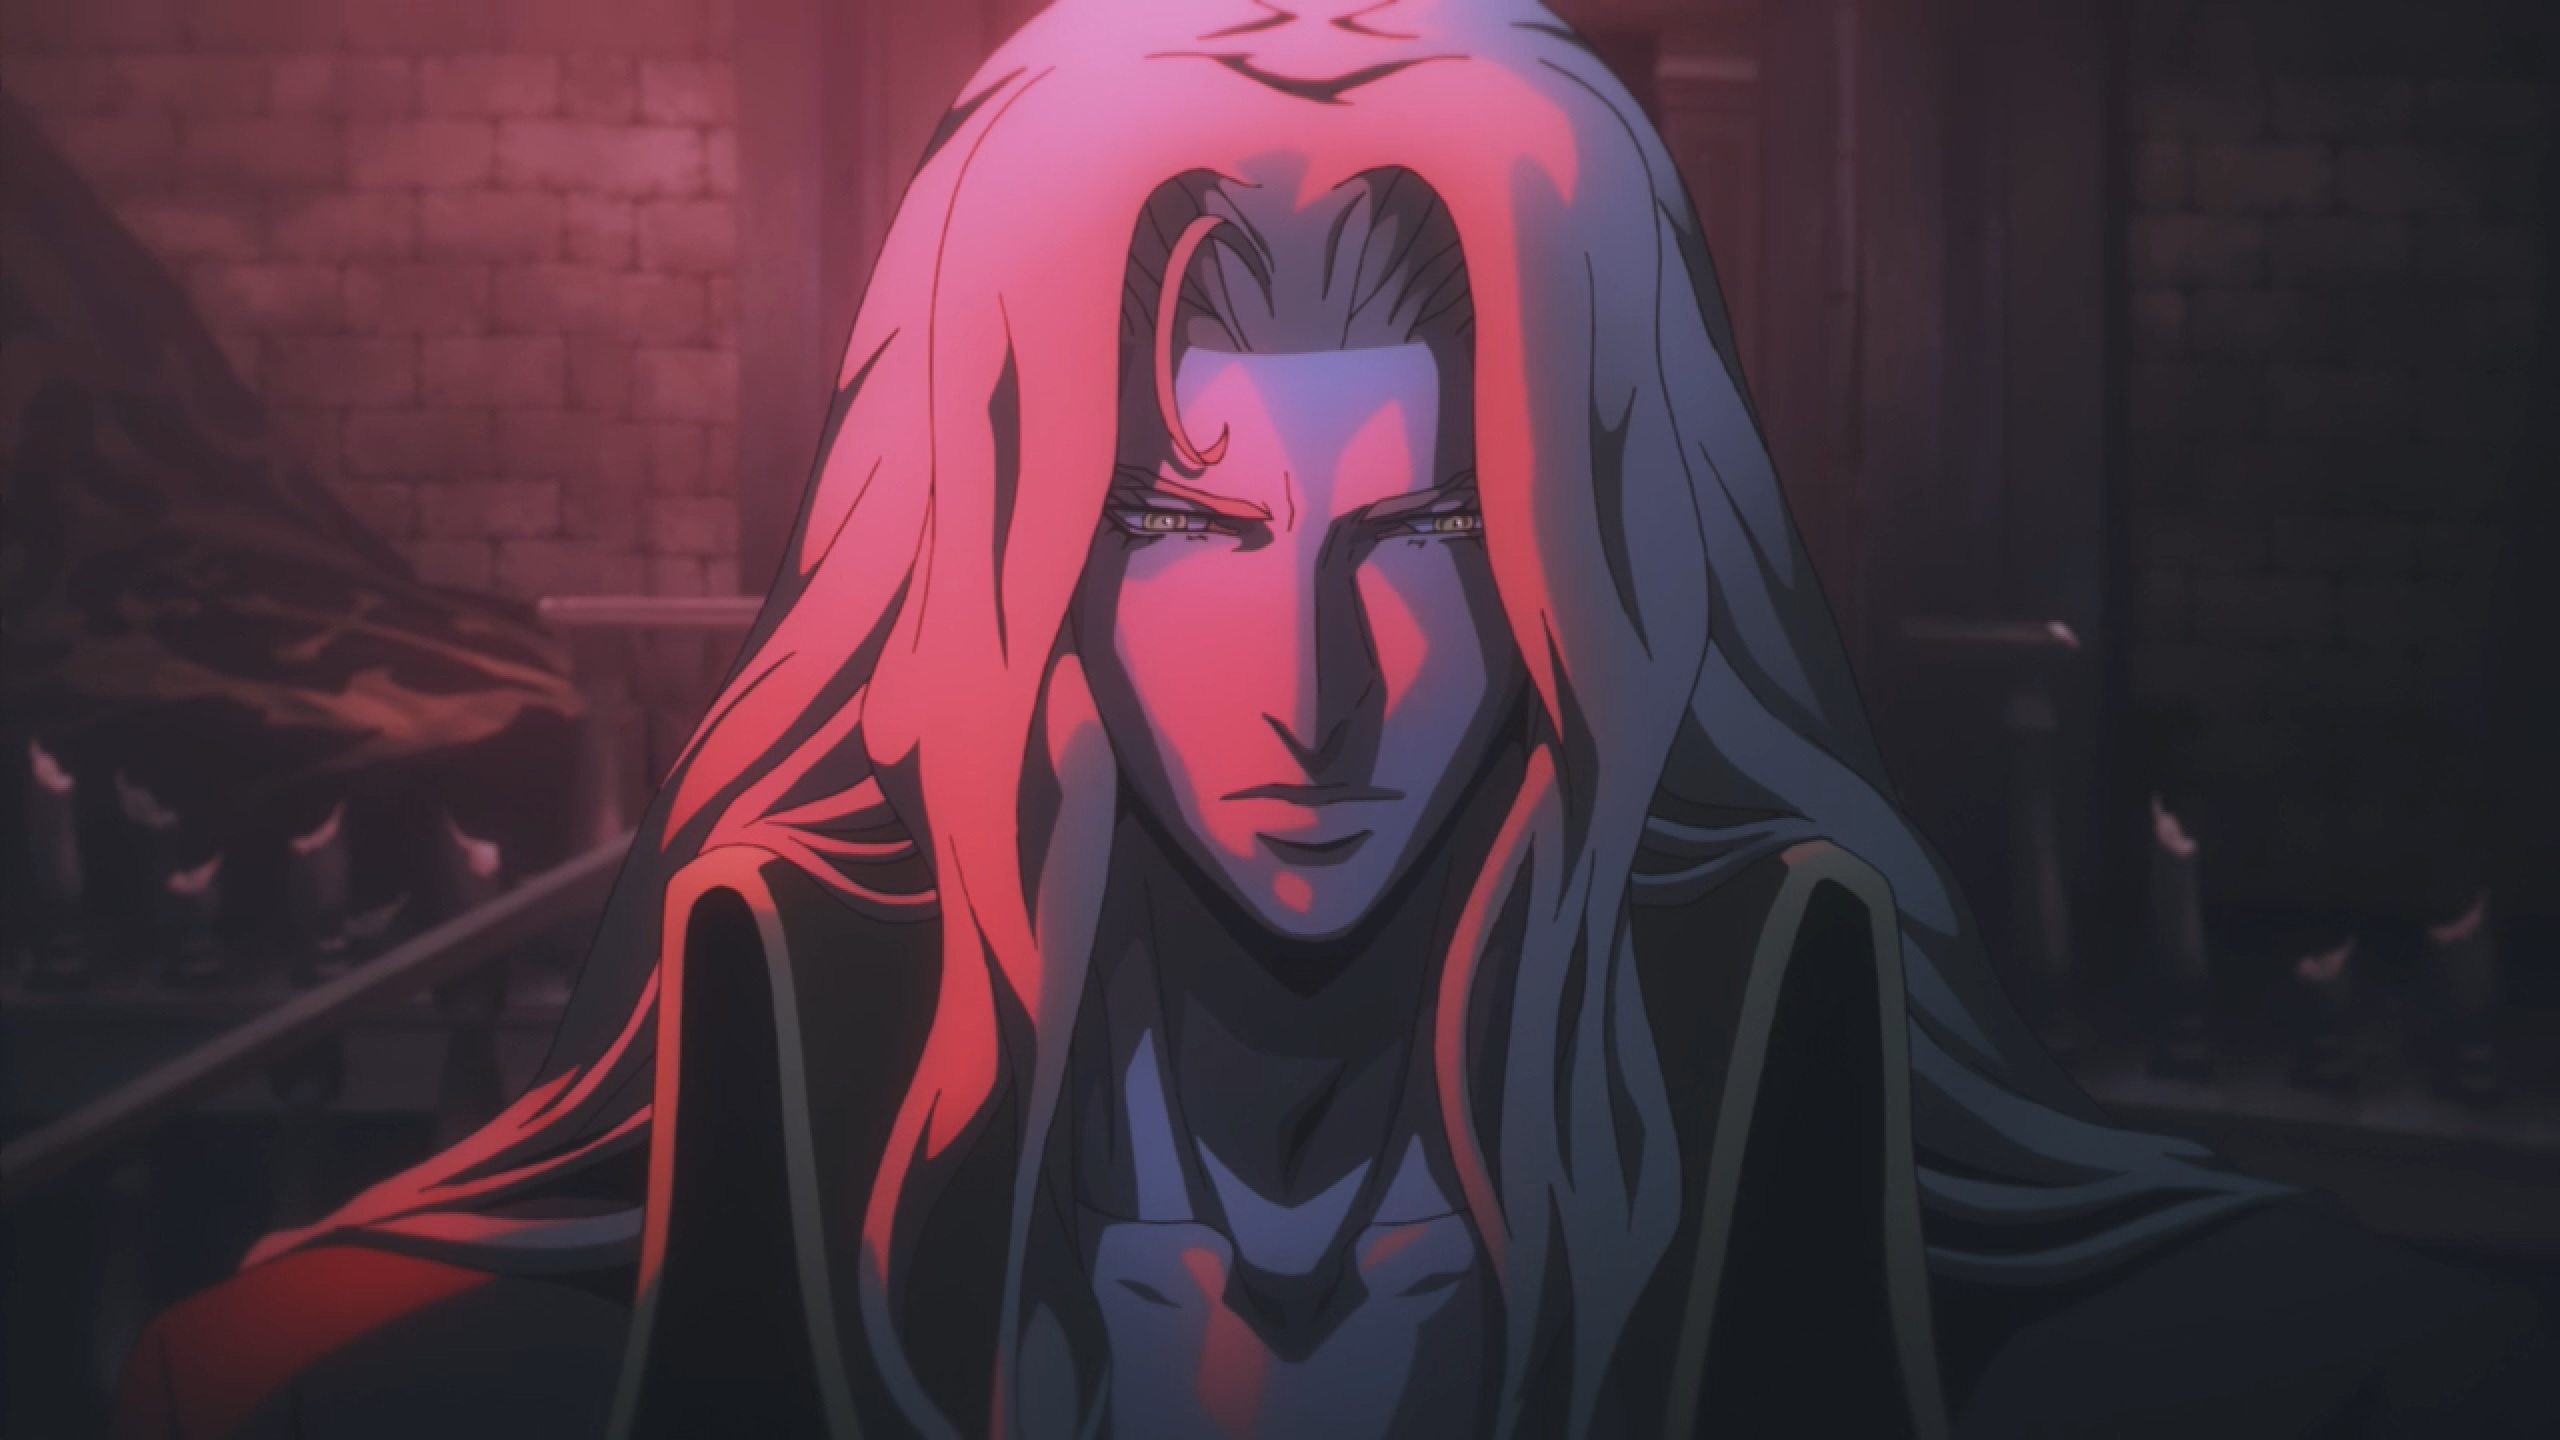 Castlevania Season 2 Review: A Crisp, Stylish, and Complete